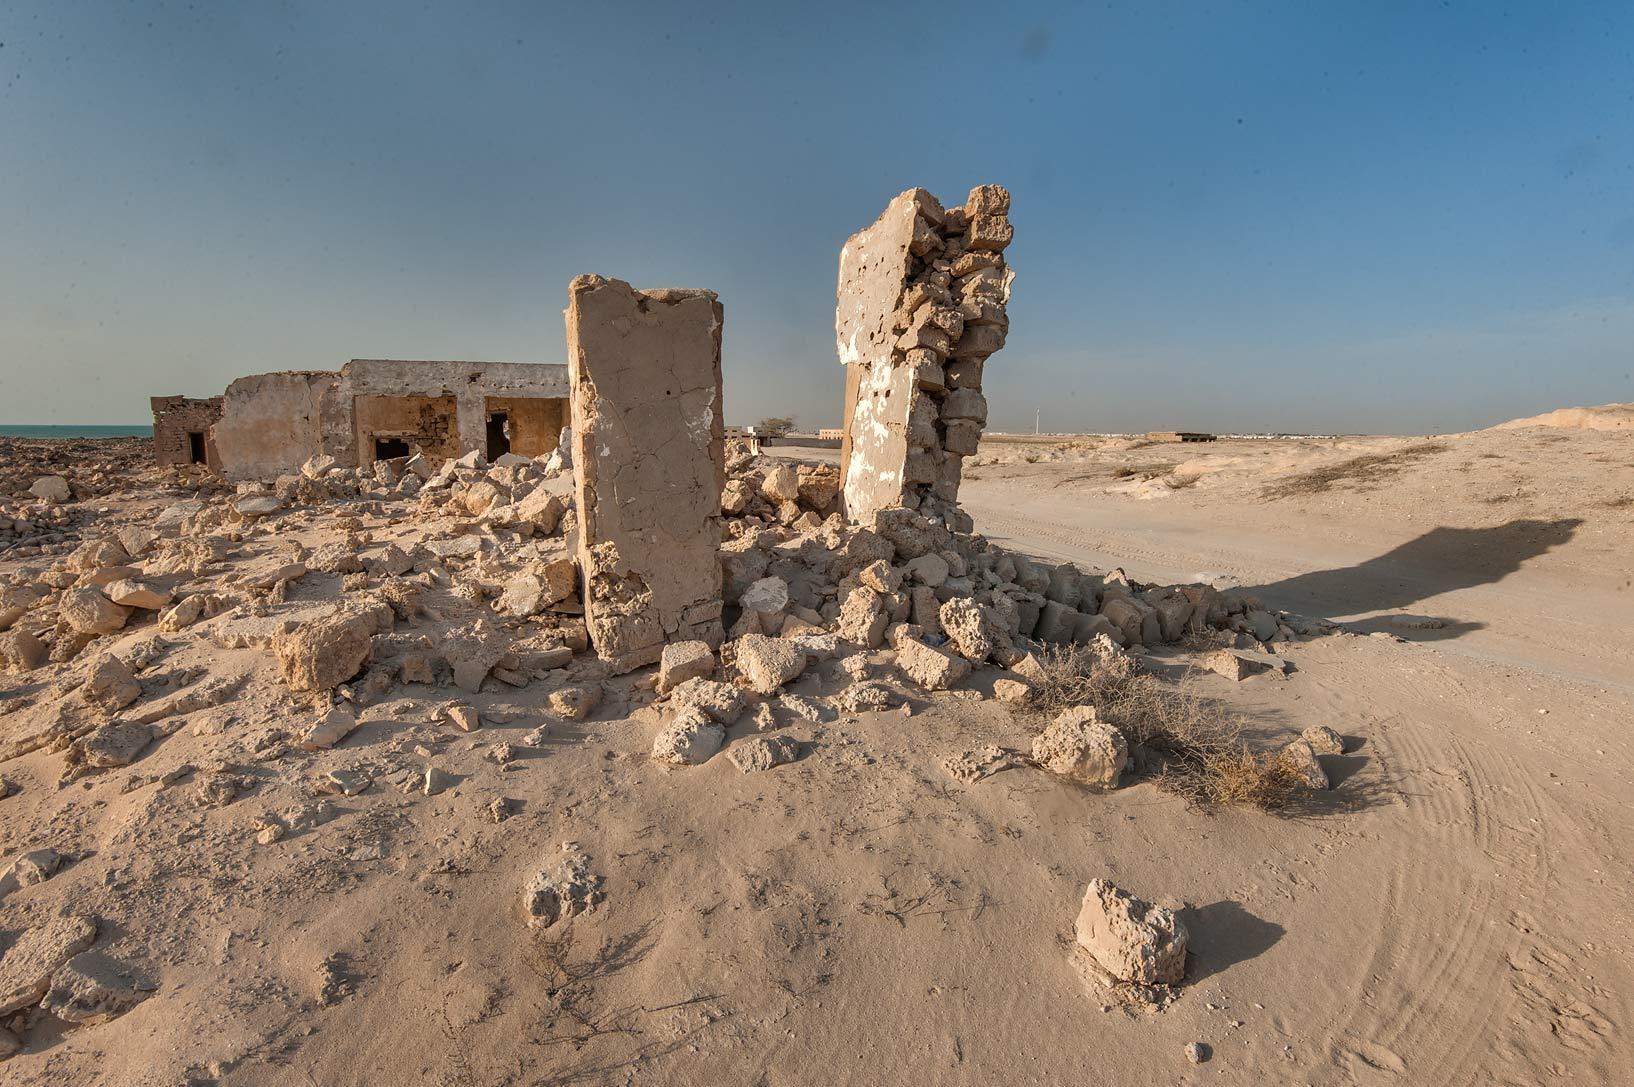 Remains of a stone wall in old fishing village...eastern coast, Ash Shamal area. Qatar